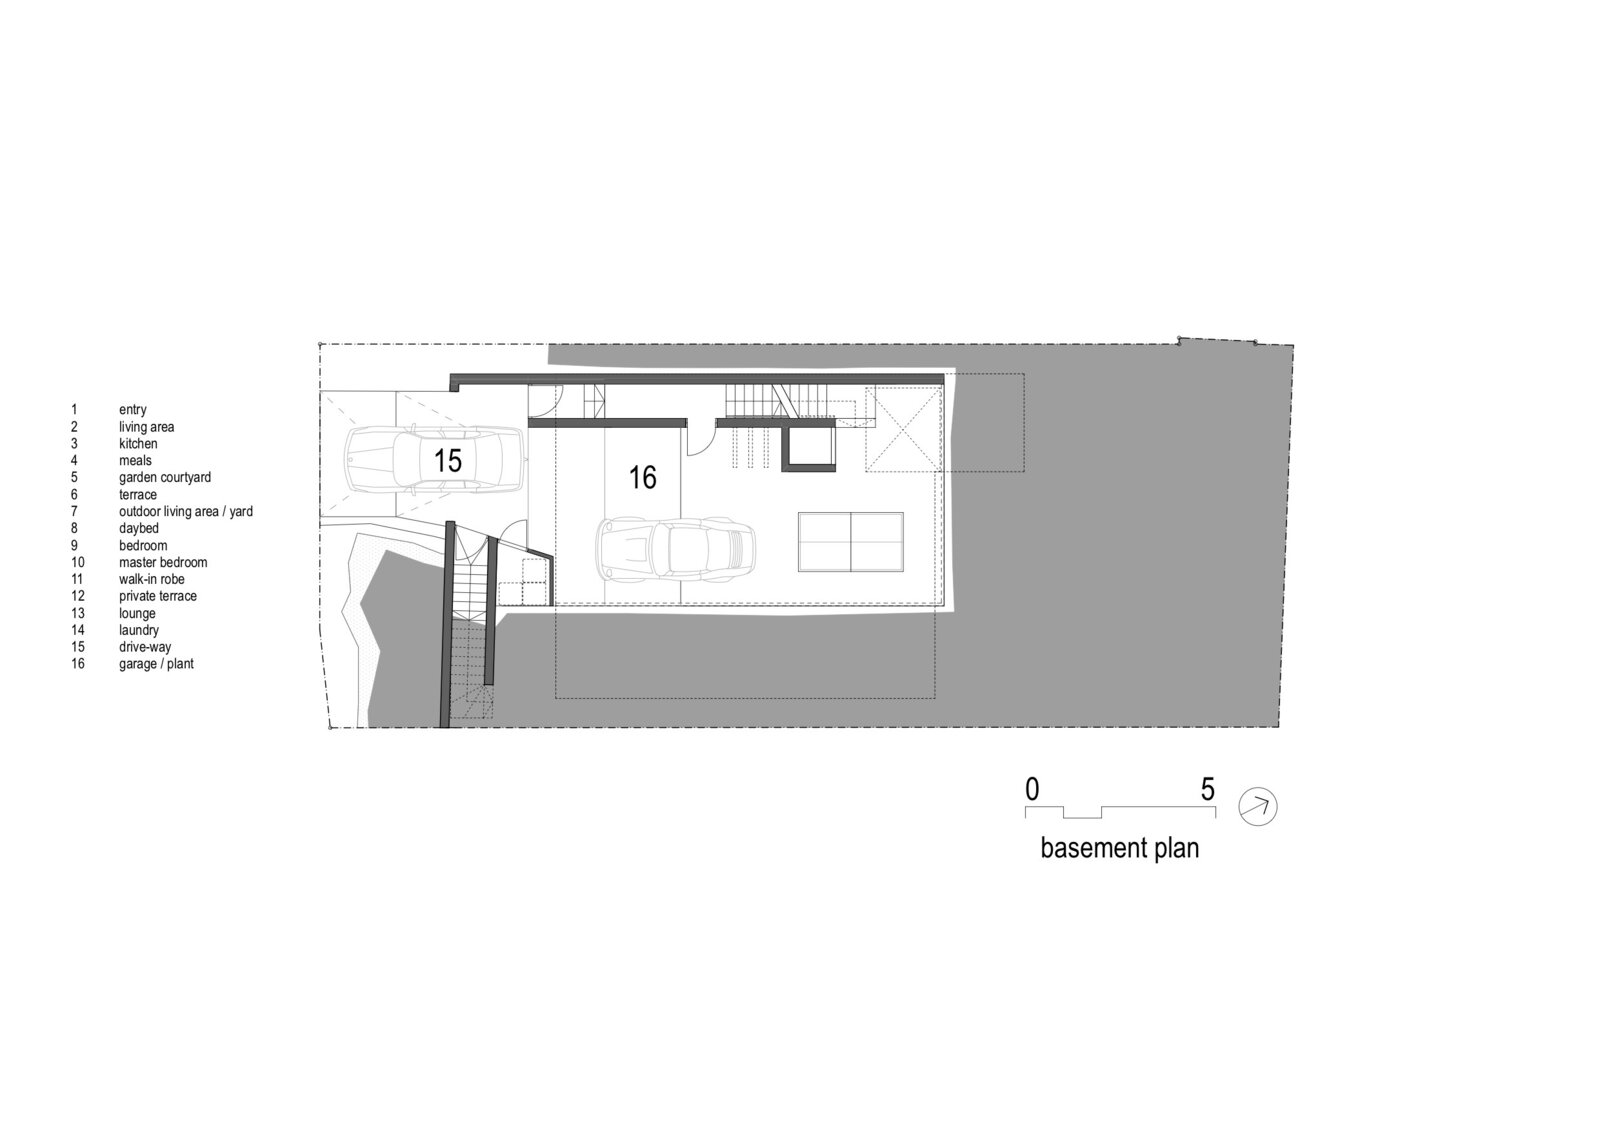 Basement Plan of Ballast Point House by Fox Johnston  Photo 16 of 19 in This Sun-Soaked Sydney Residence Sits on a Sandstone Ledge